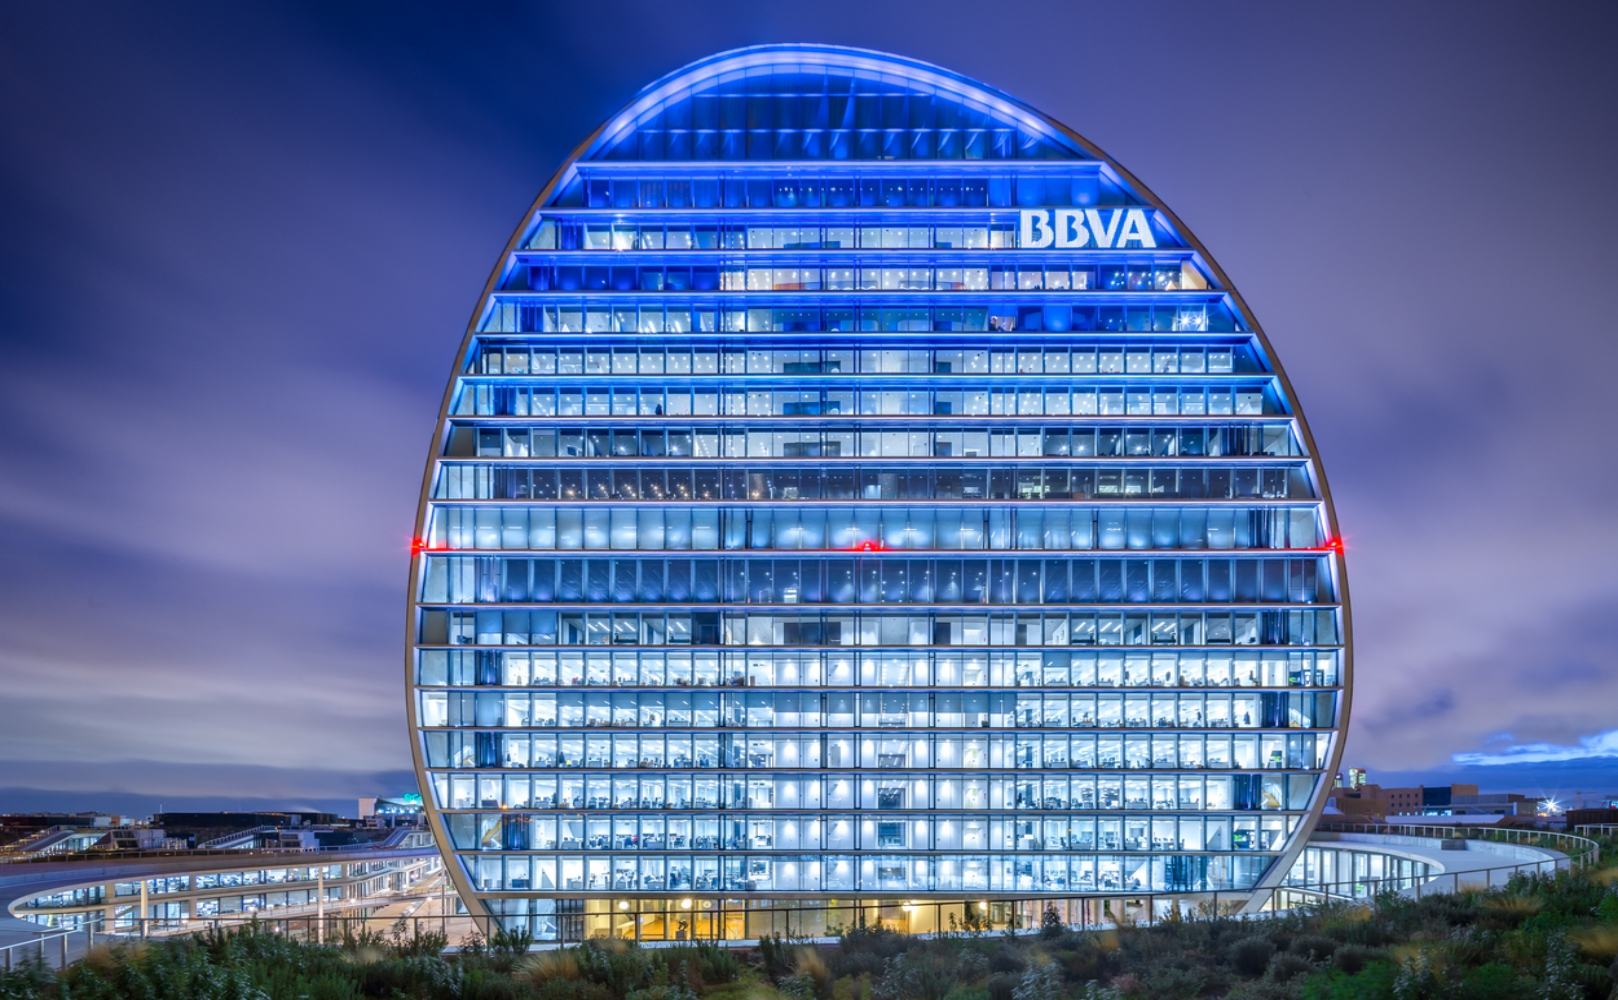 xBBVA_HEADQUARTERS-149